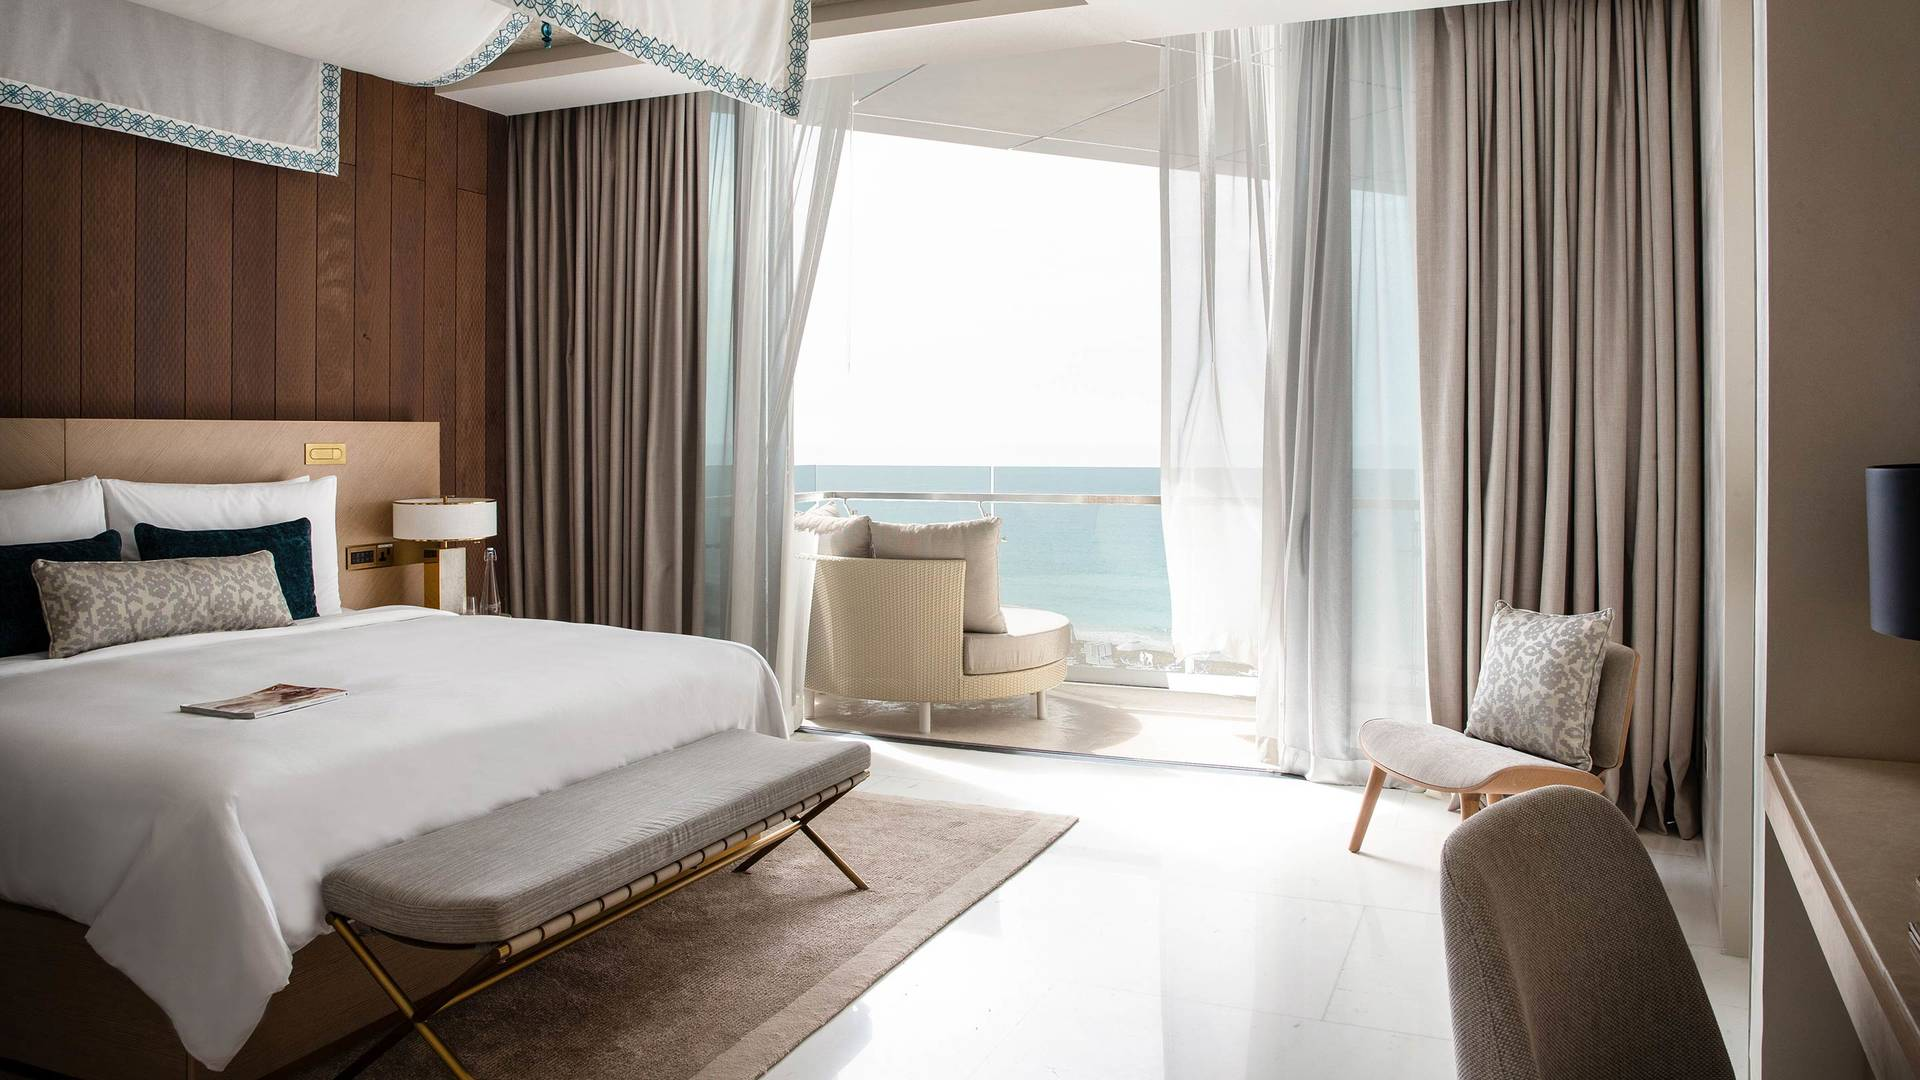 View at the Abu Dhabi Suite bedroom at Jumeirah Saadiyat Island Resort